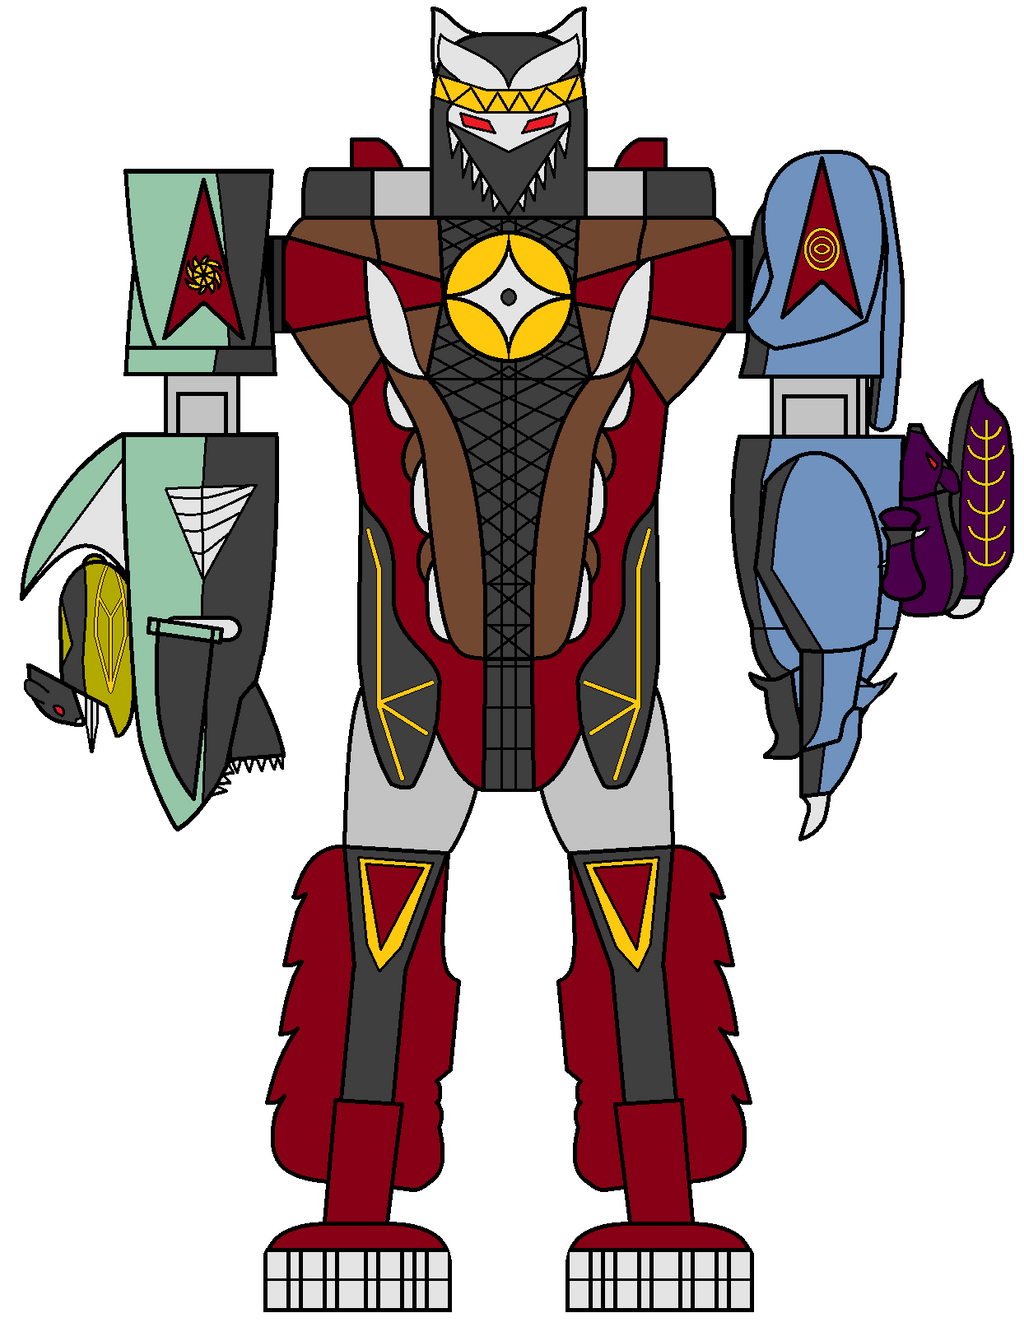 Shinobi Megazord by hypersamus on DeviantArt